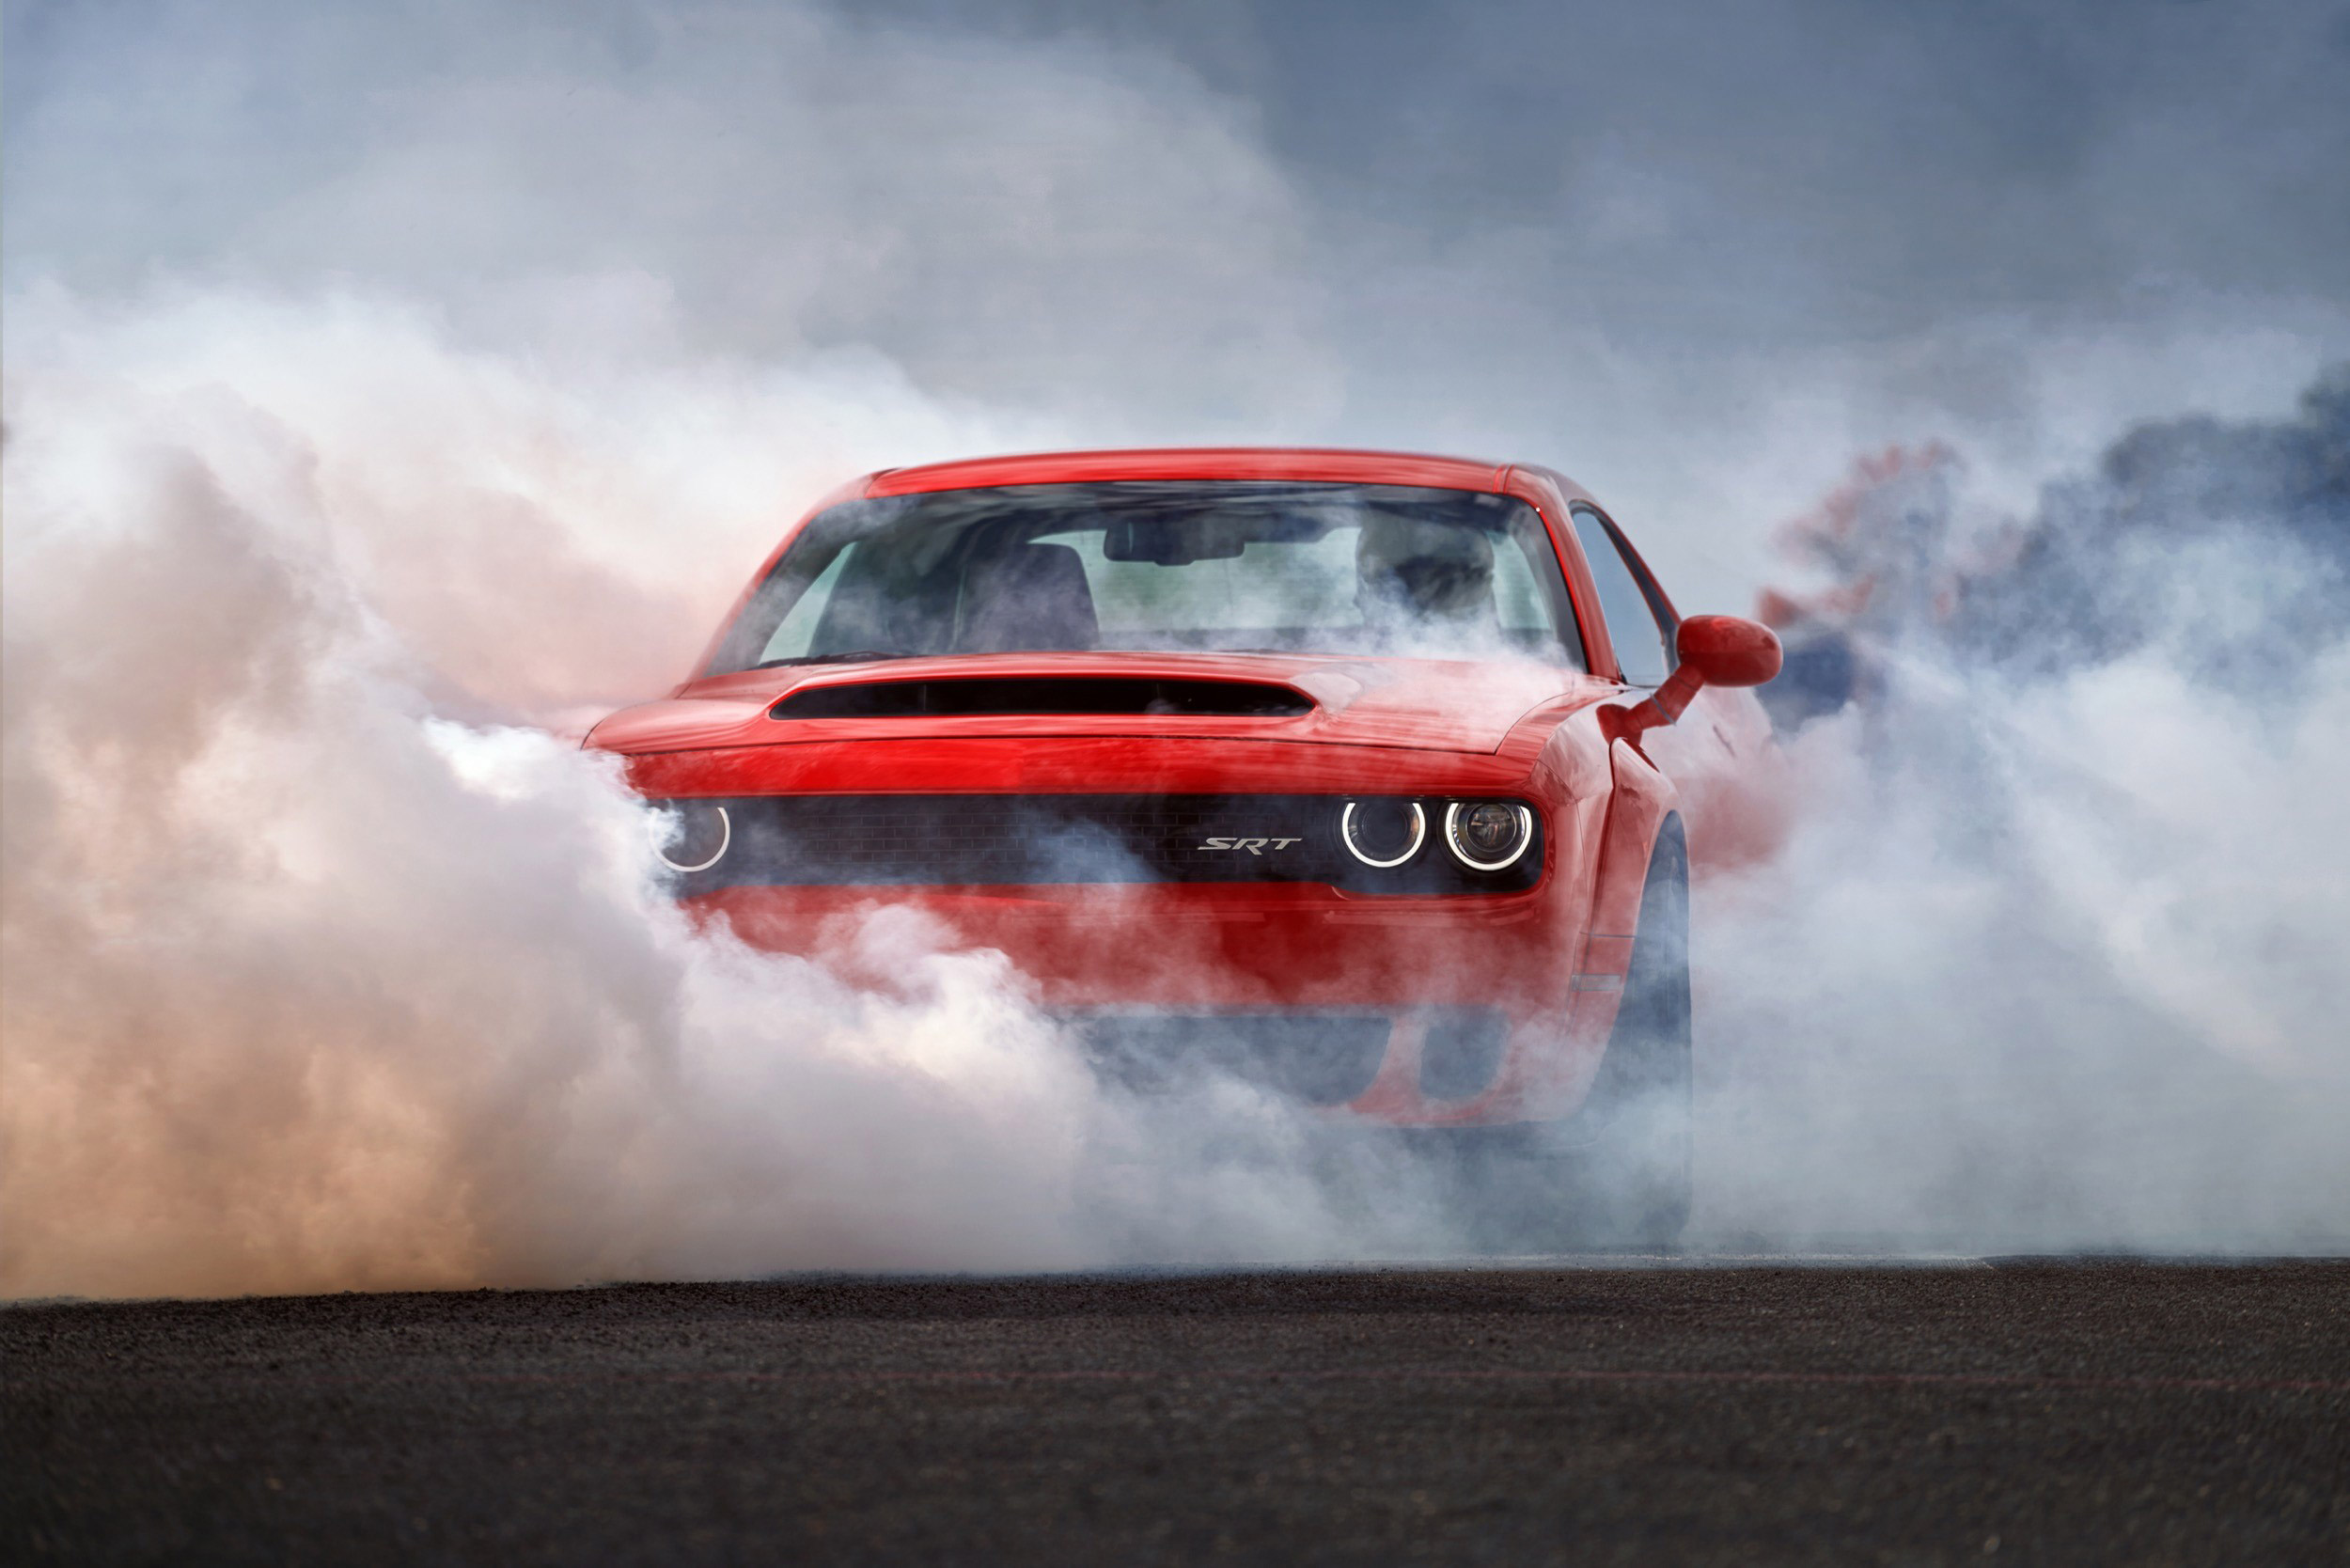 a3f12f5fd35 2018 Dodge Challenger SRT Demon HD, HD Cars, 4k Wallpapers, Images ...